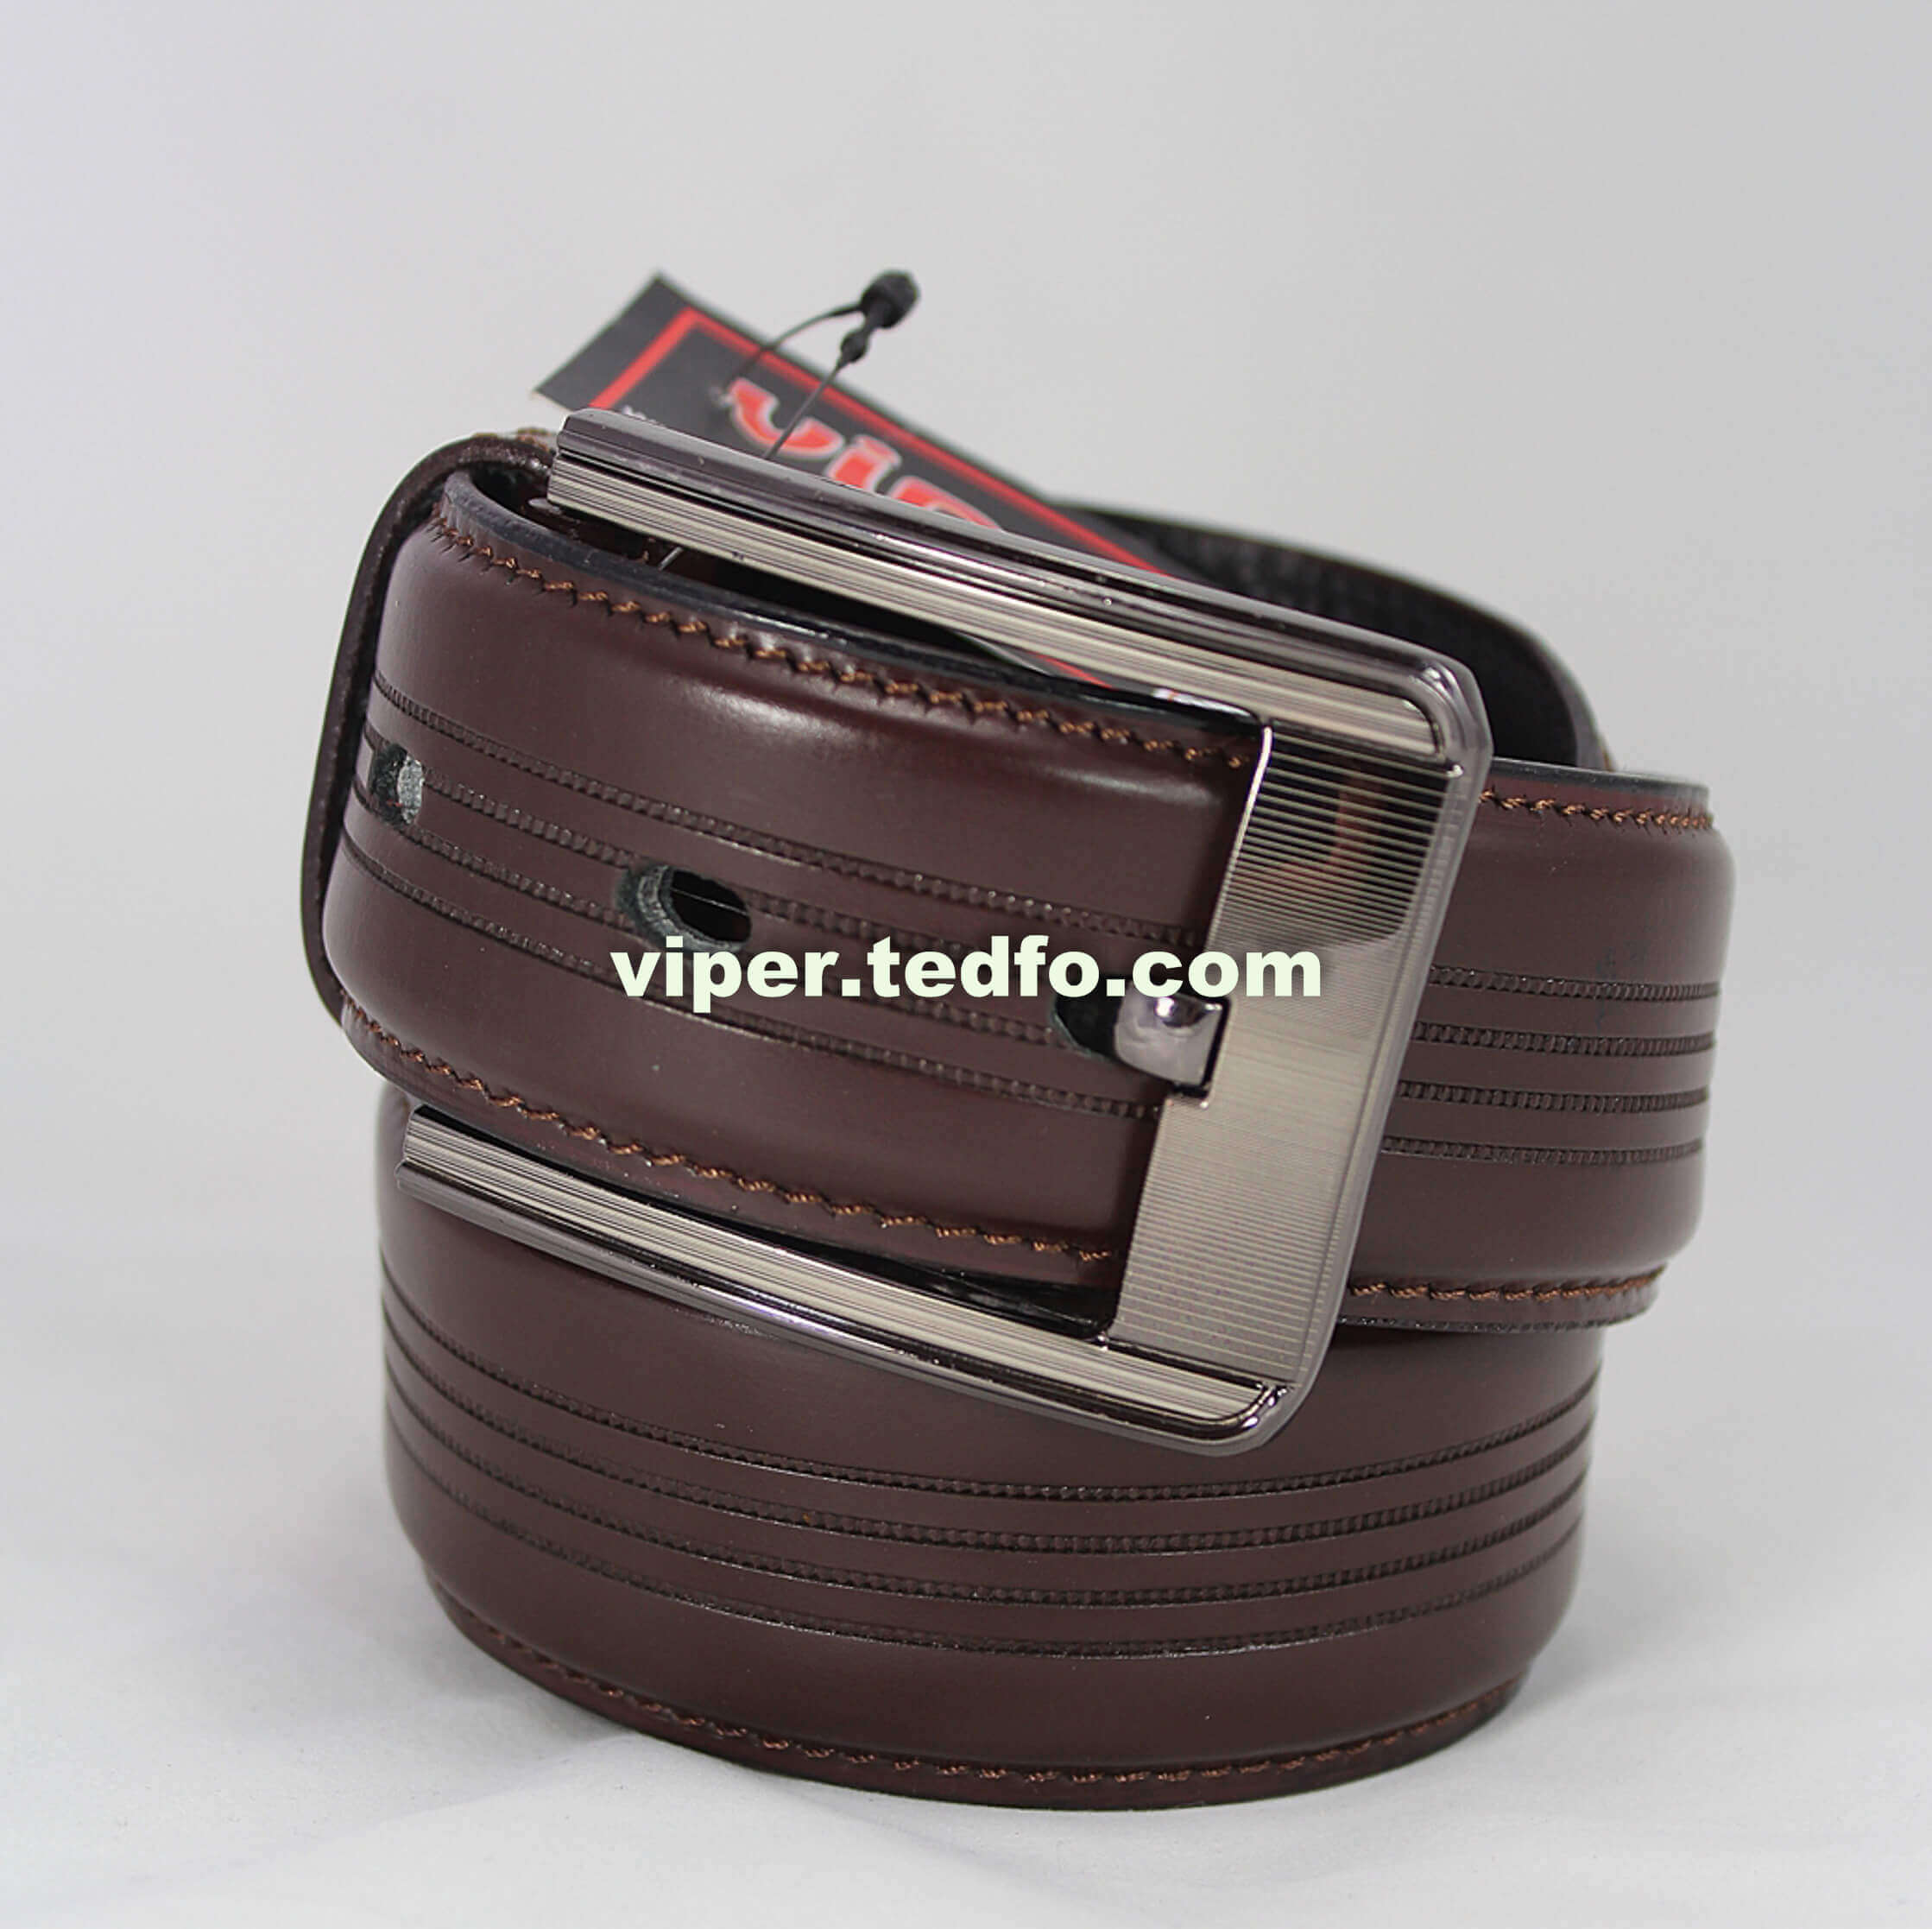 Standard Leather Belts,Brown Leather Belt,Leather belts from Bangladesh,Simple leather belt